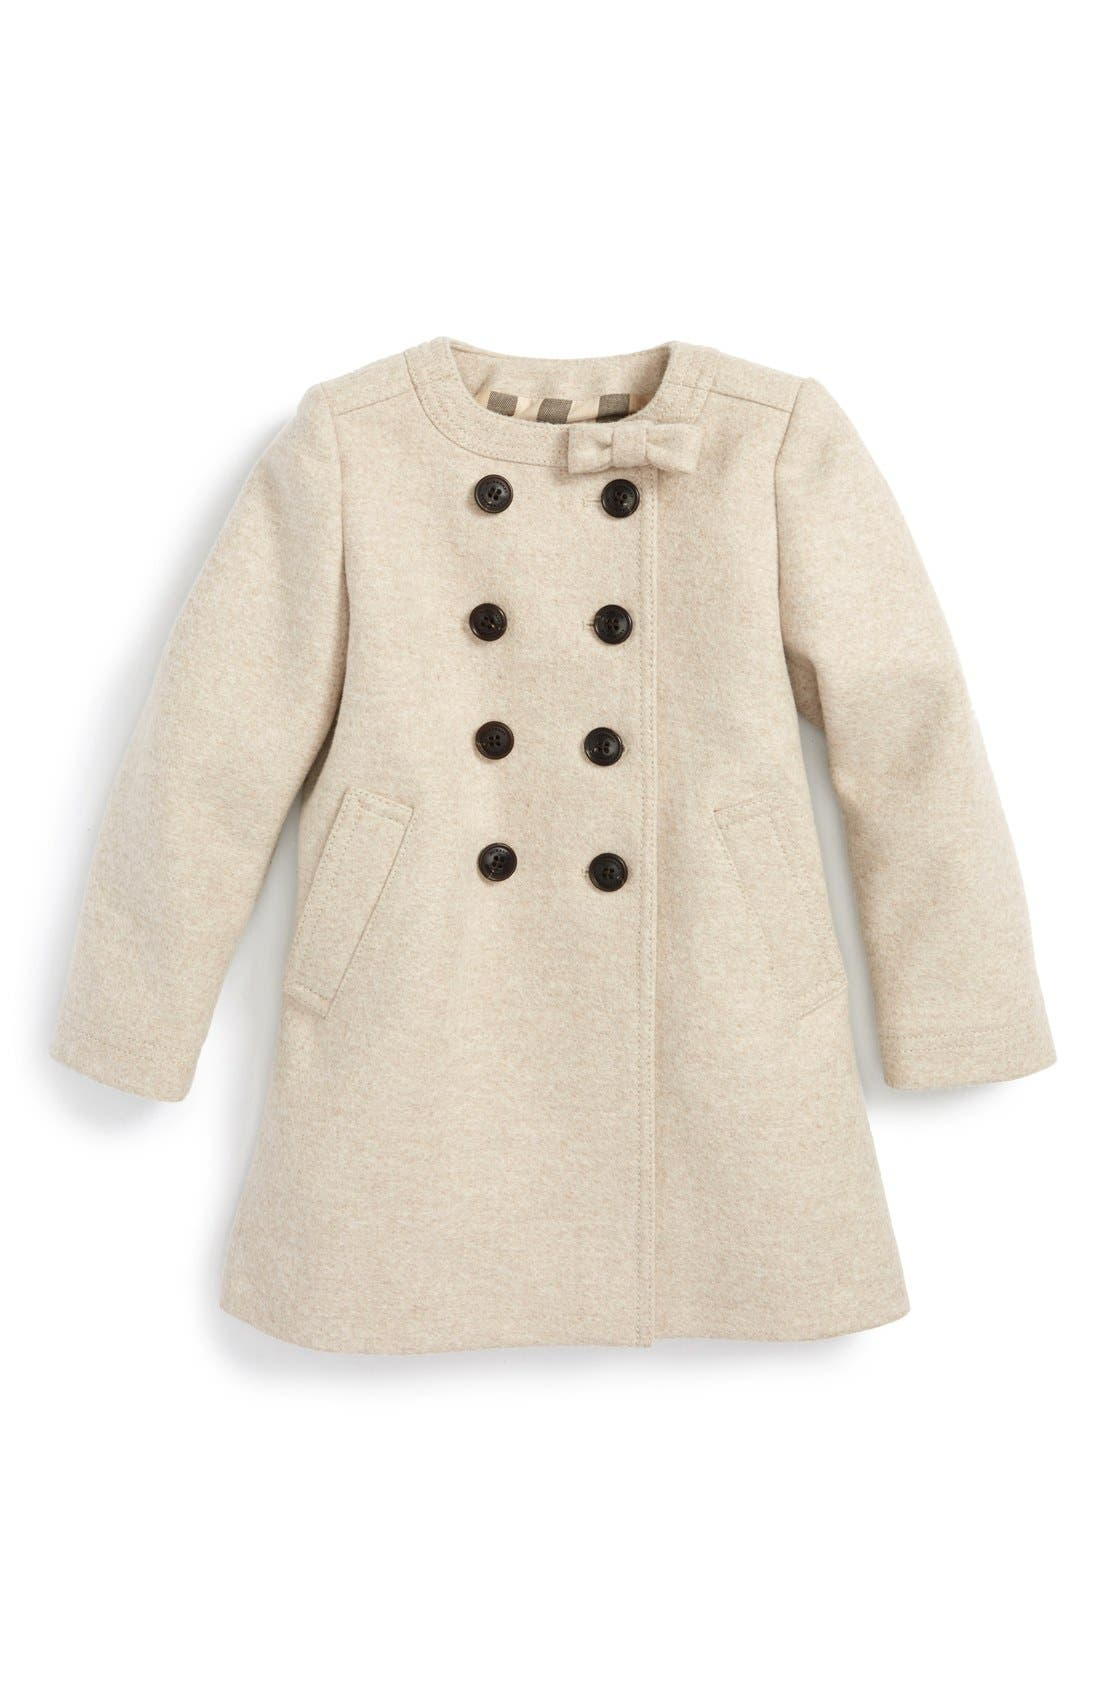 Alternate Image 1 Selected - Burberry 'Rose' Wool Blend A-Line Coat (Baby Girls)